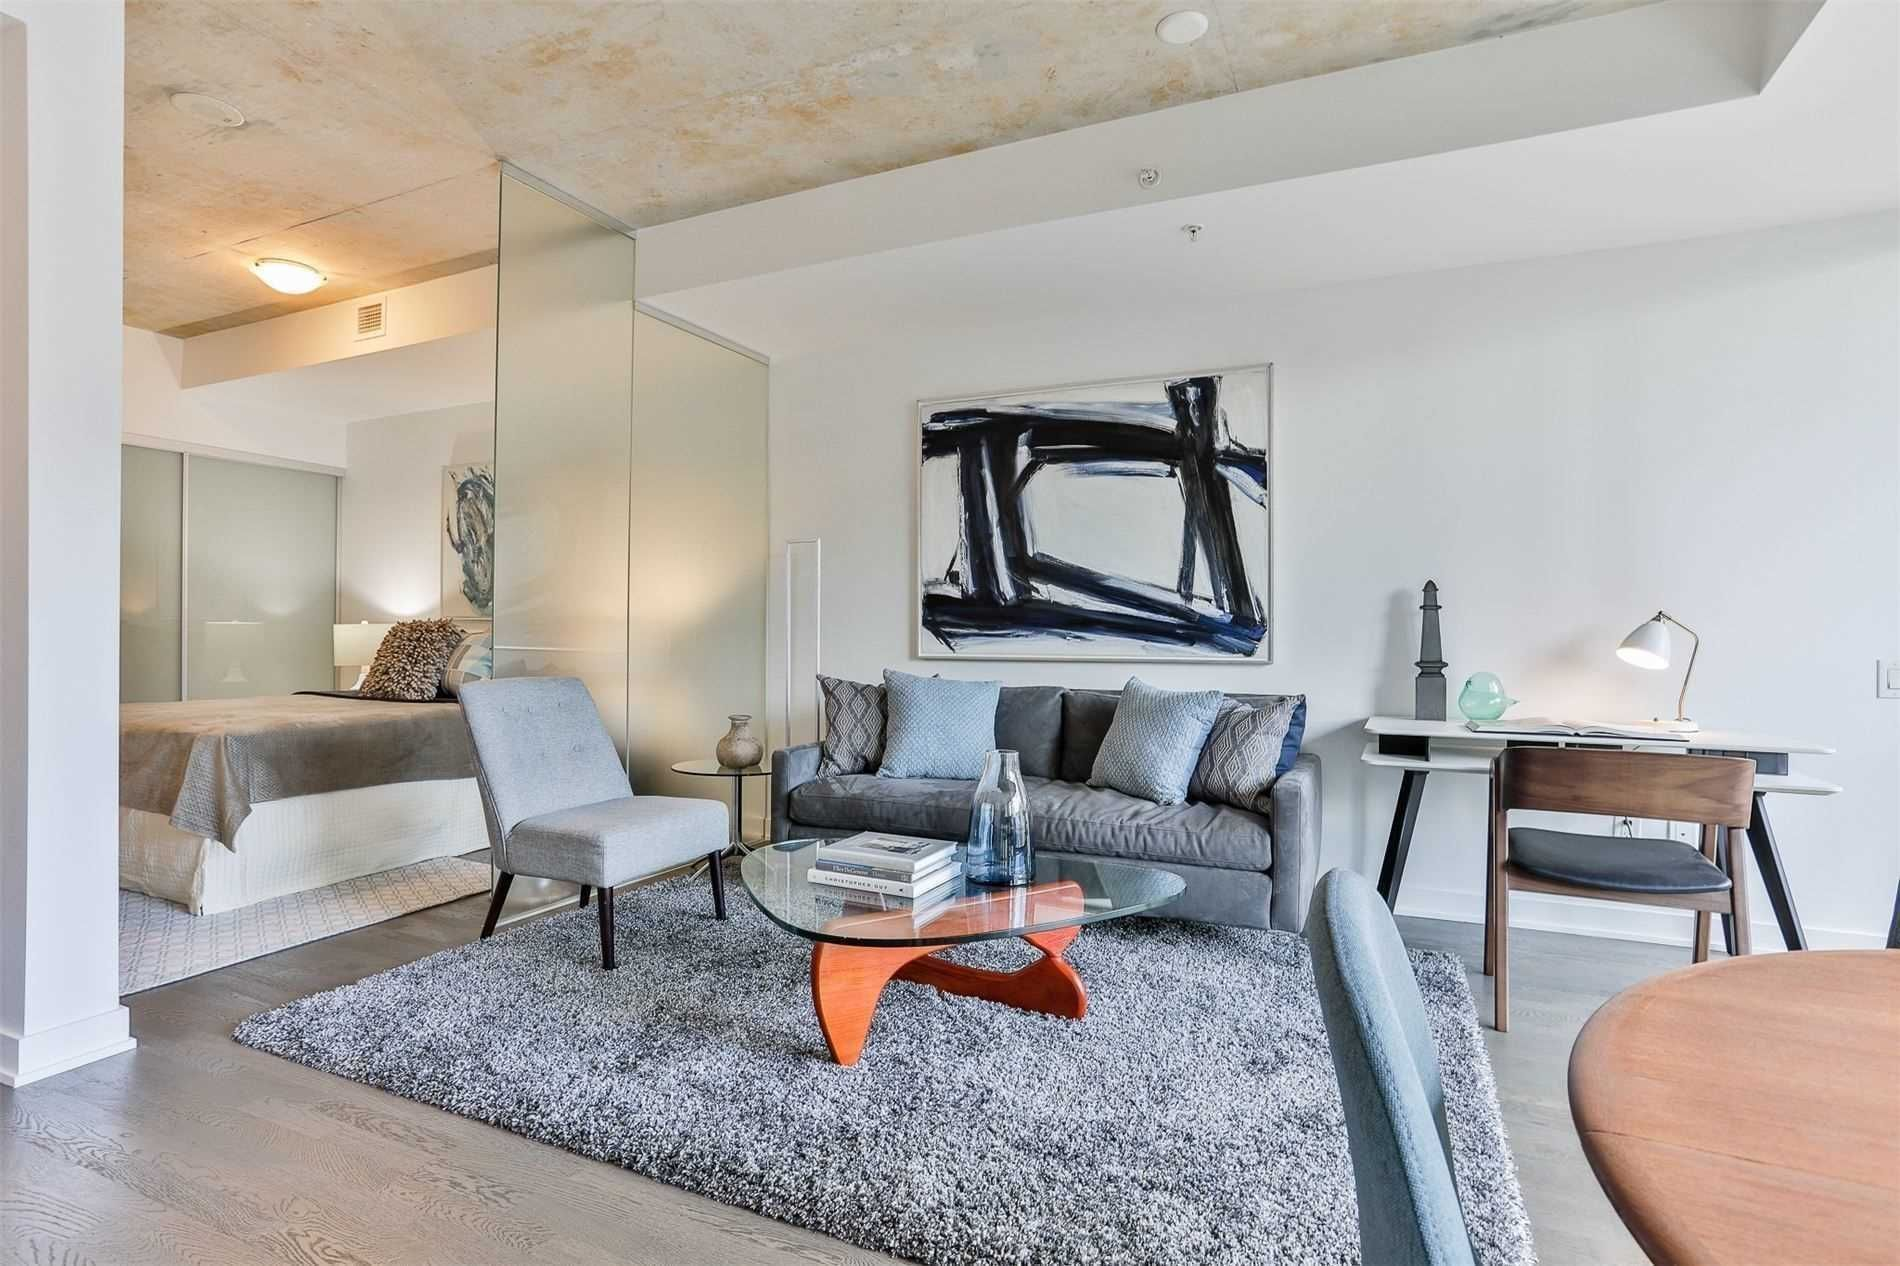 629 King St W, unit 515 for sale in Toronto - image #2